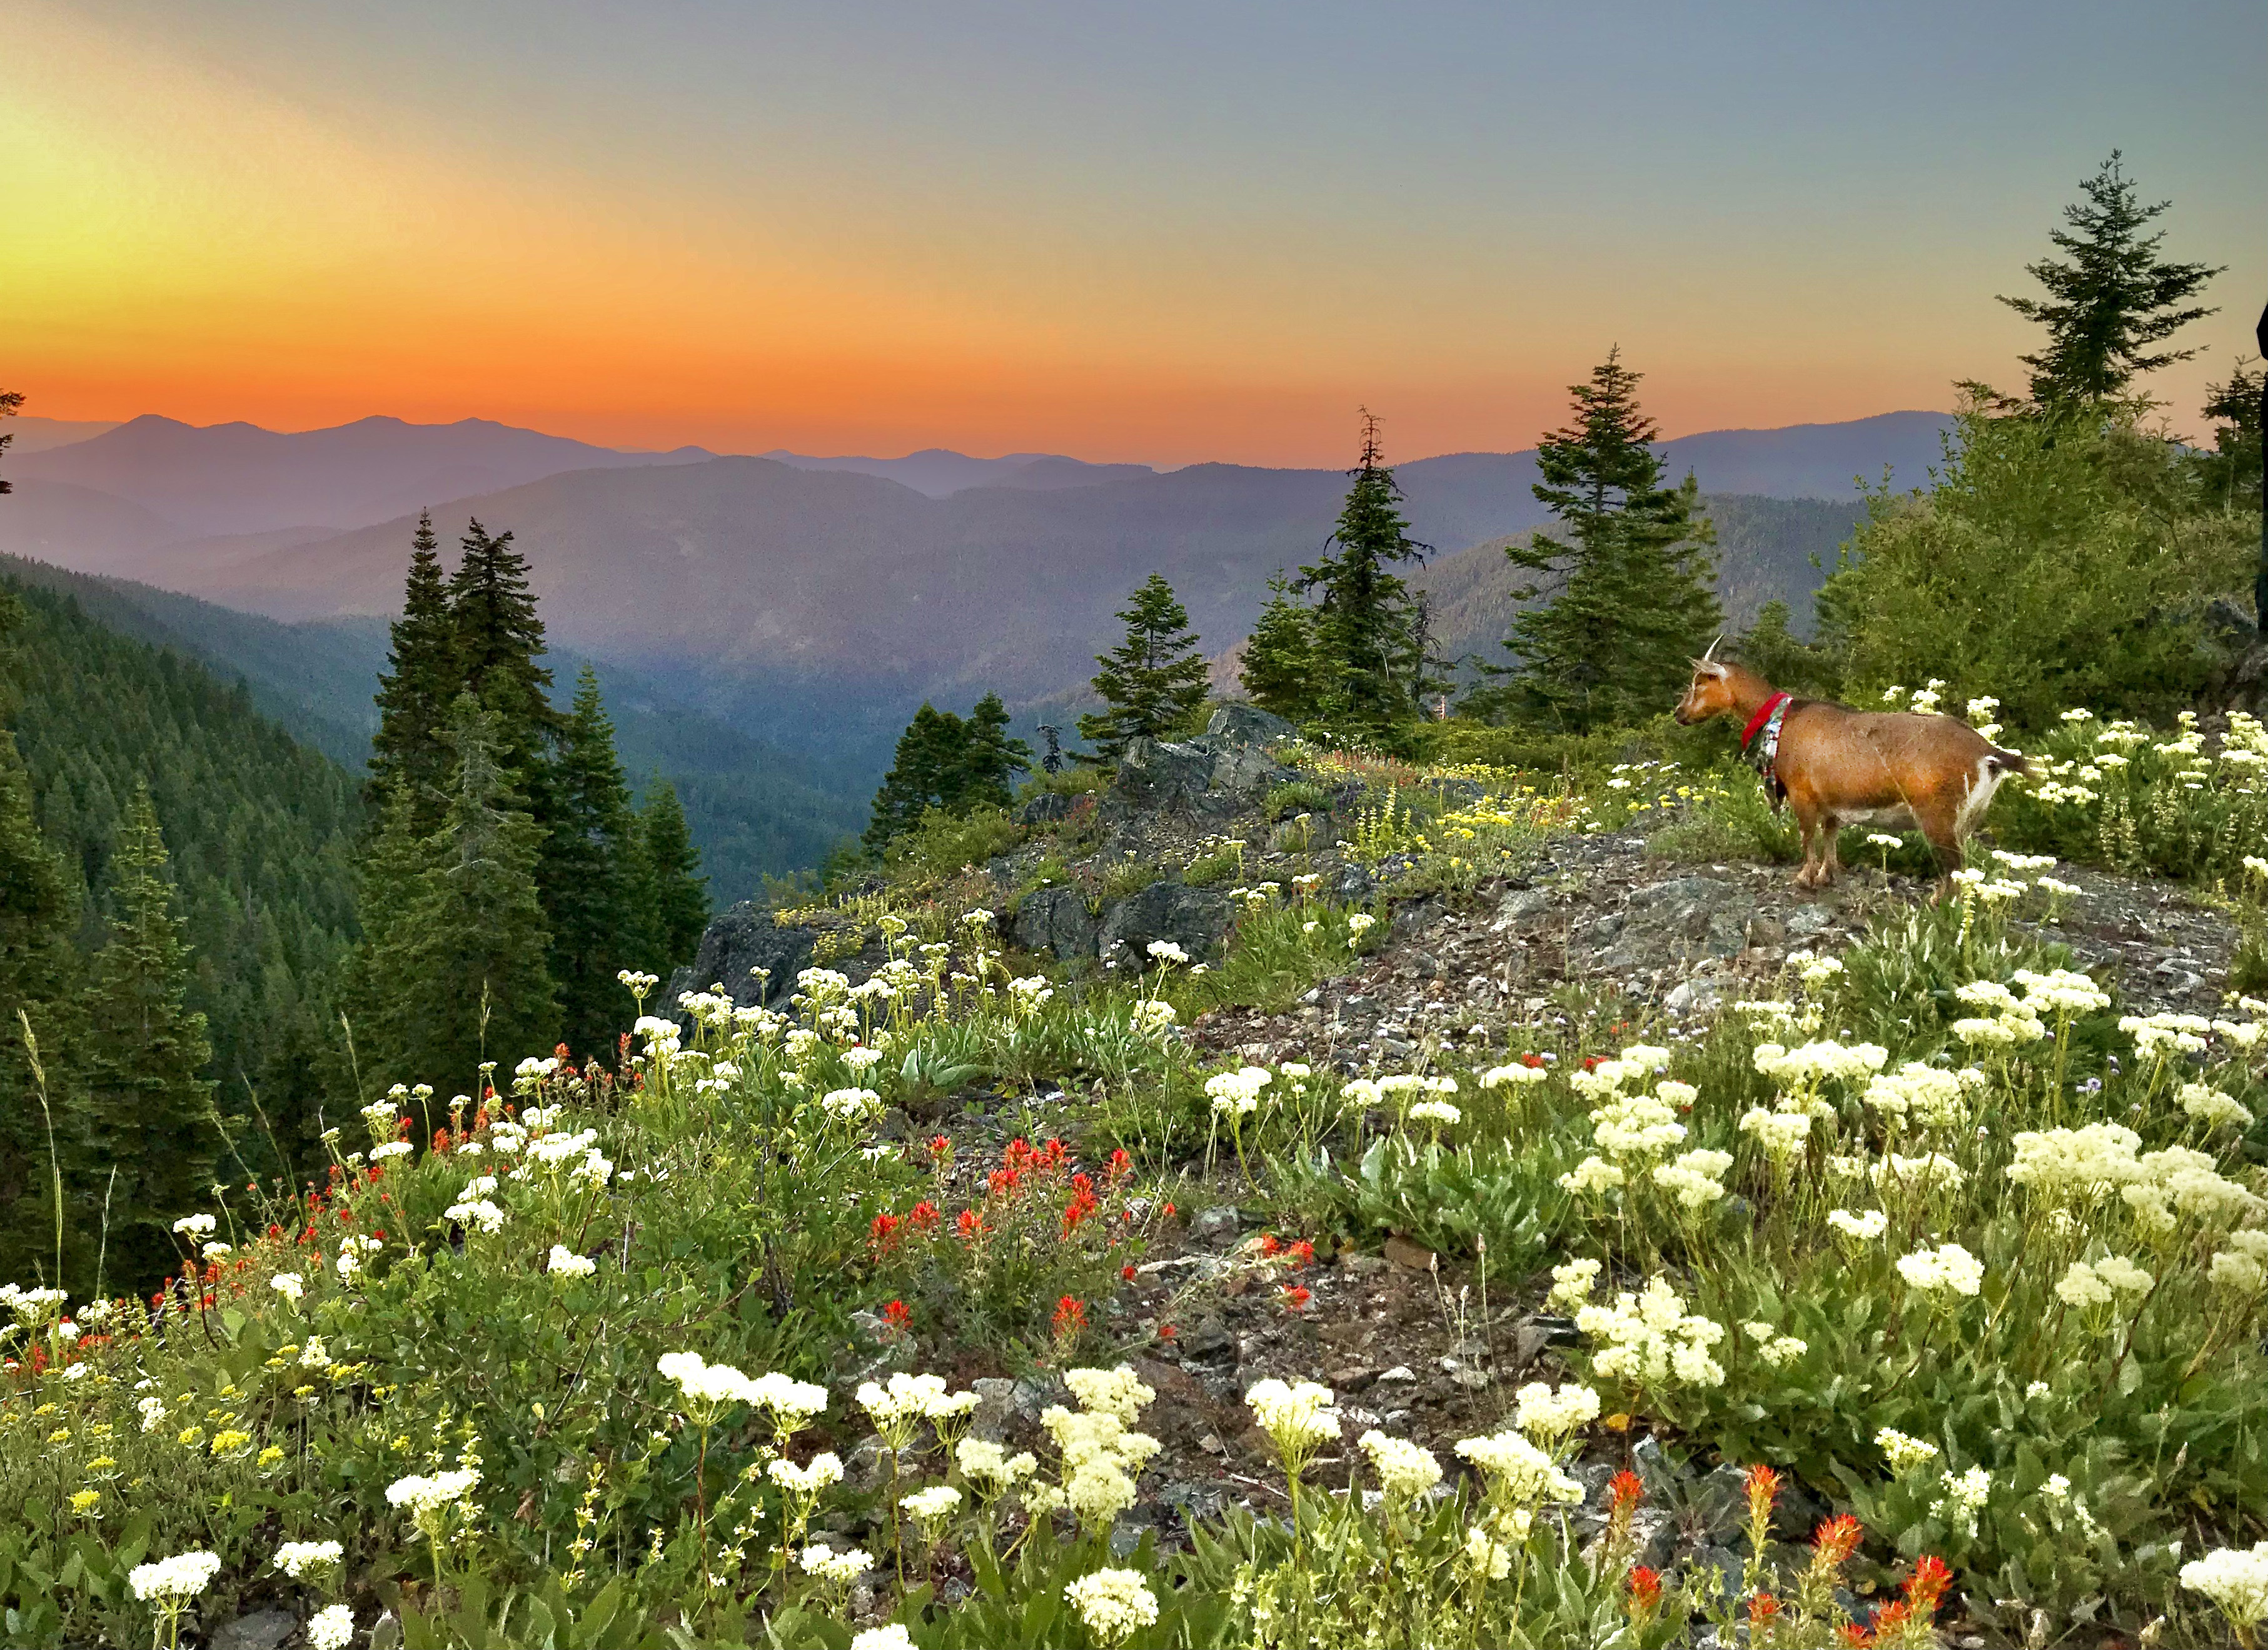 standing atop a ride, a goat looks out over a sea of flowers.